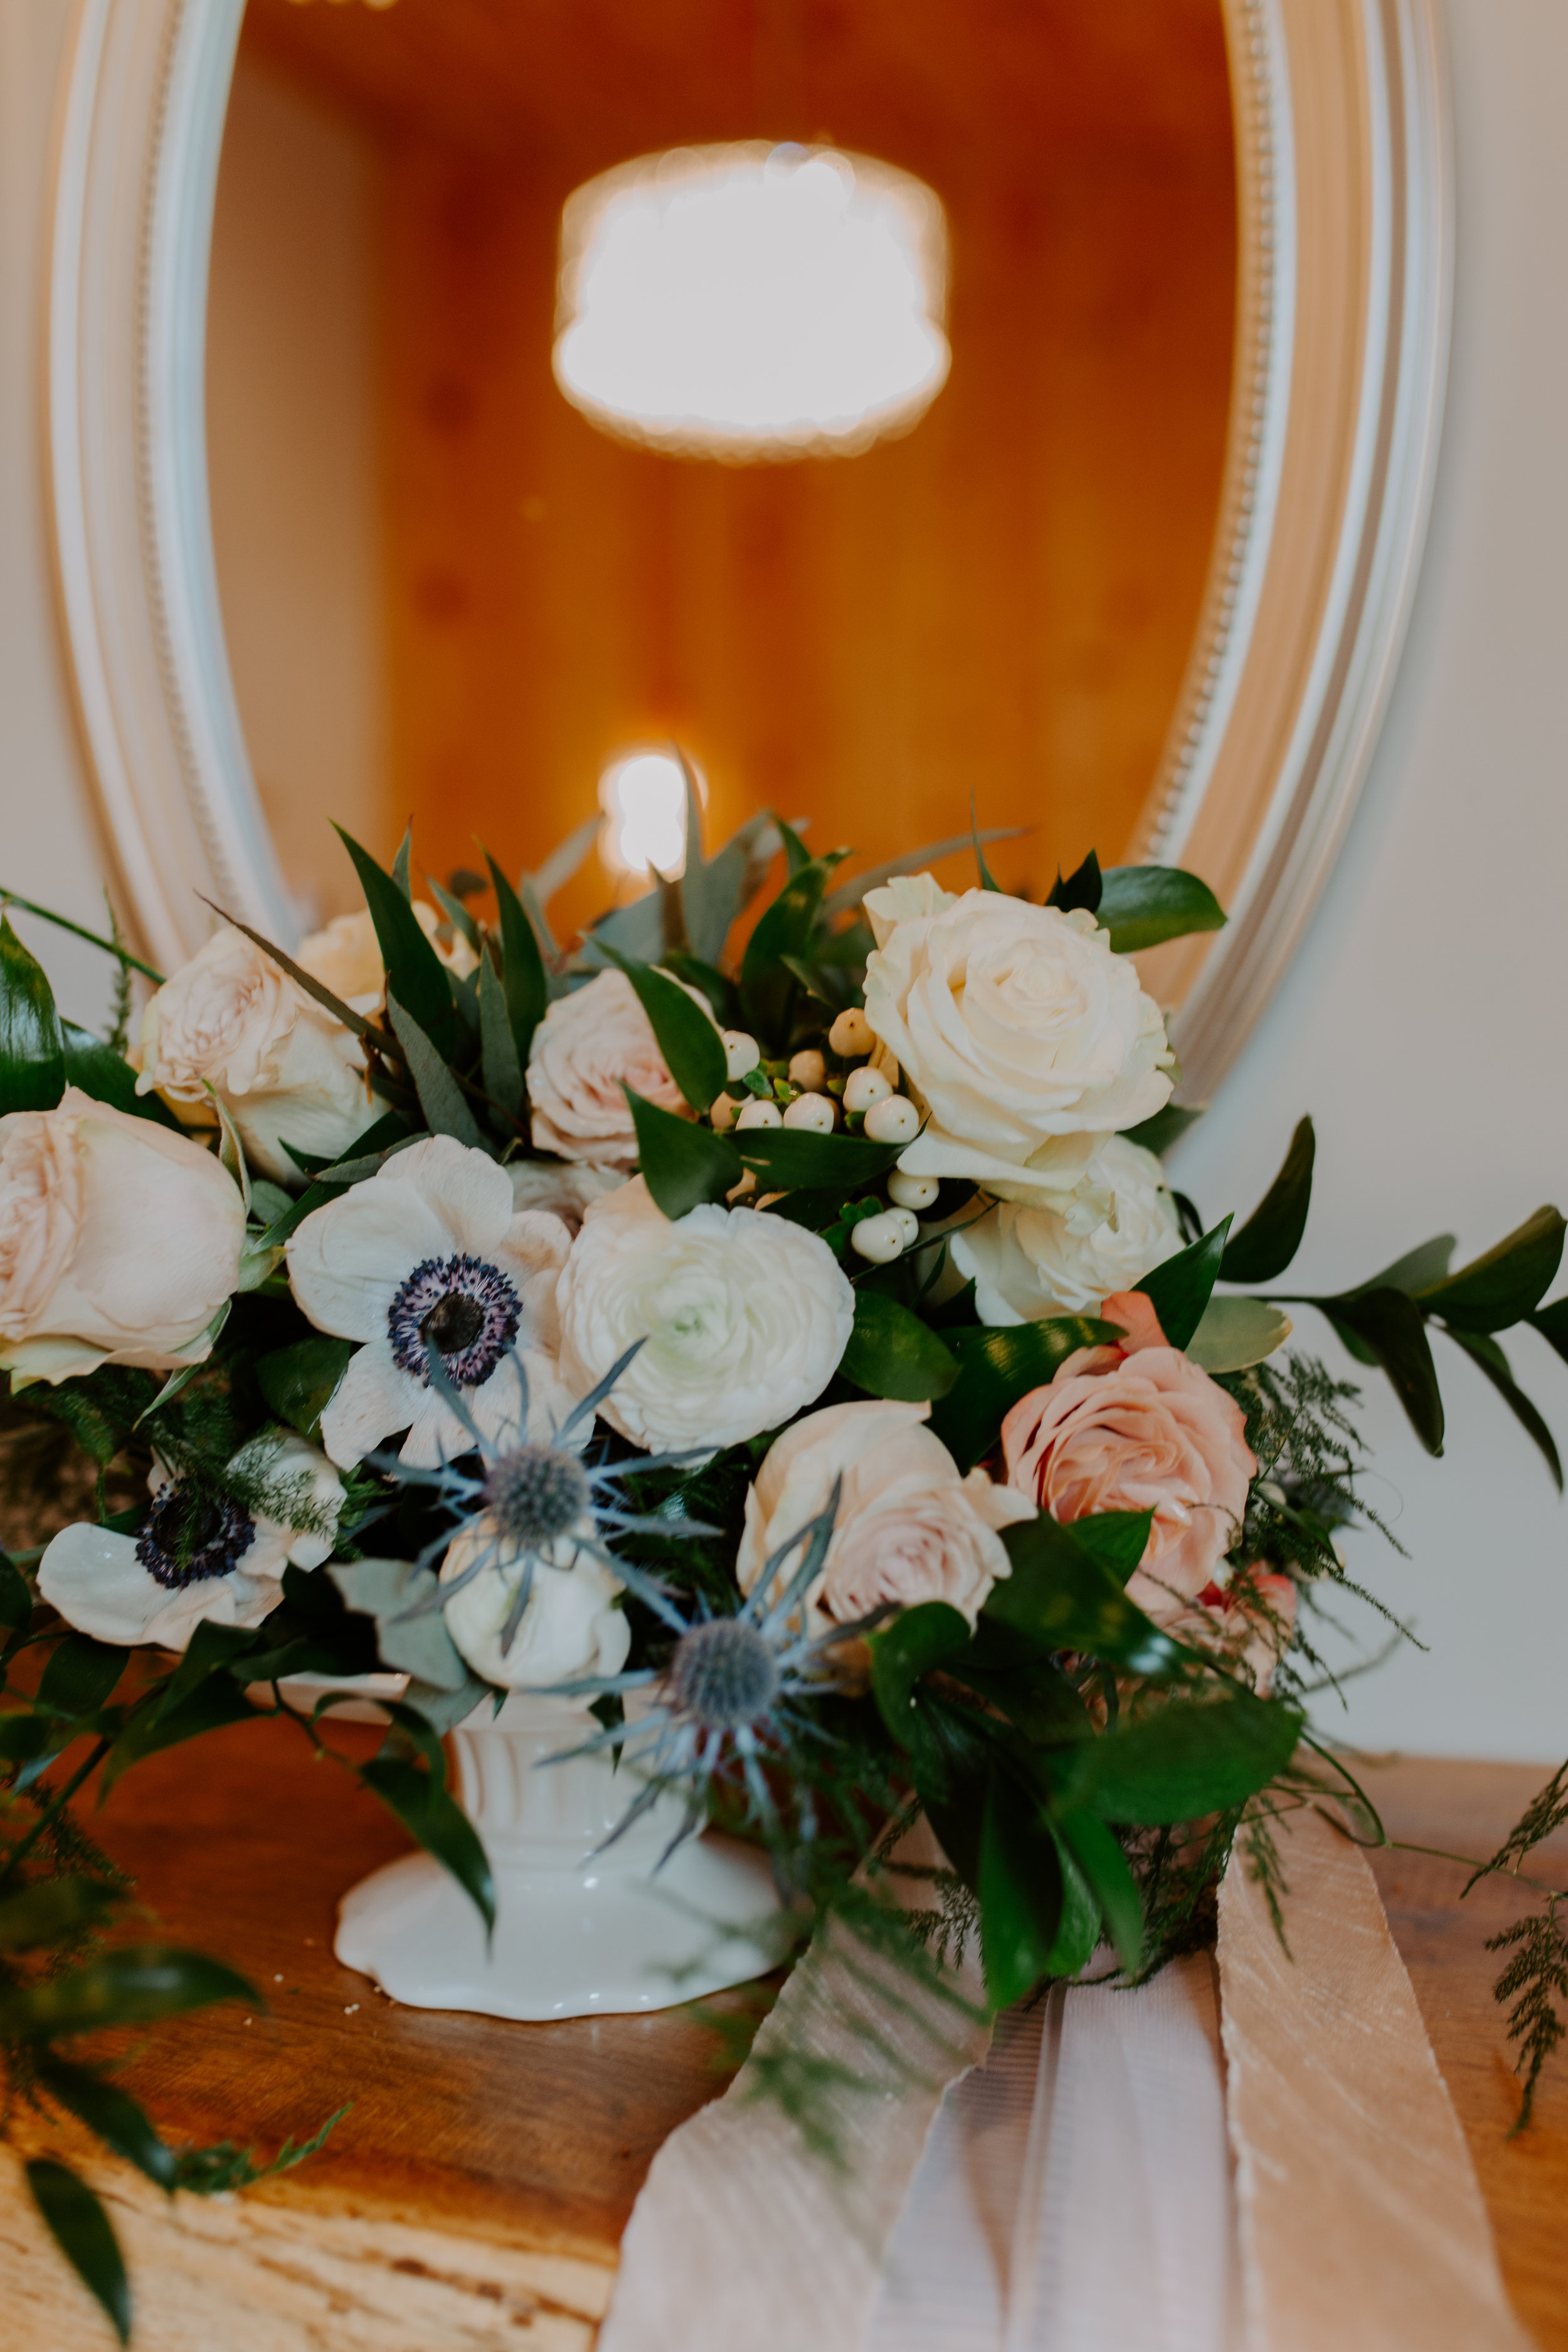 A bridal bouquet with cream and white flowers, blush rose, blue thistle, tied with satin ribbon in peach color, white berries and eucalyptus as accent for wedding at Country Lane Lodge